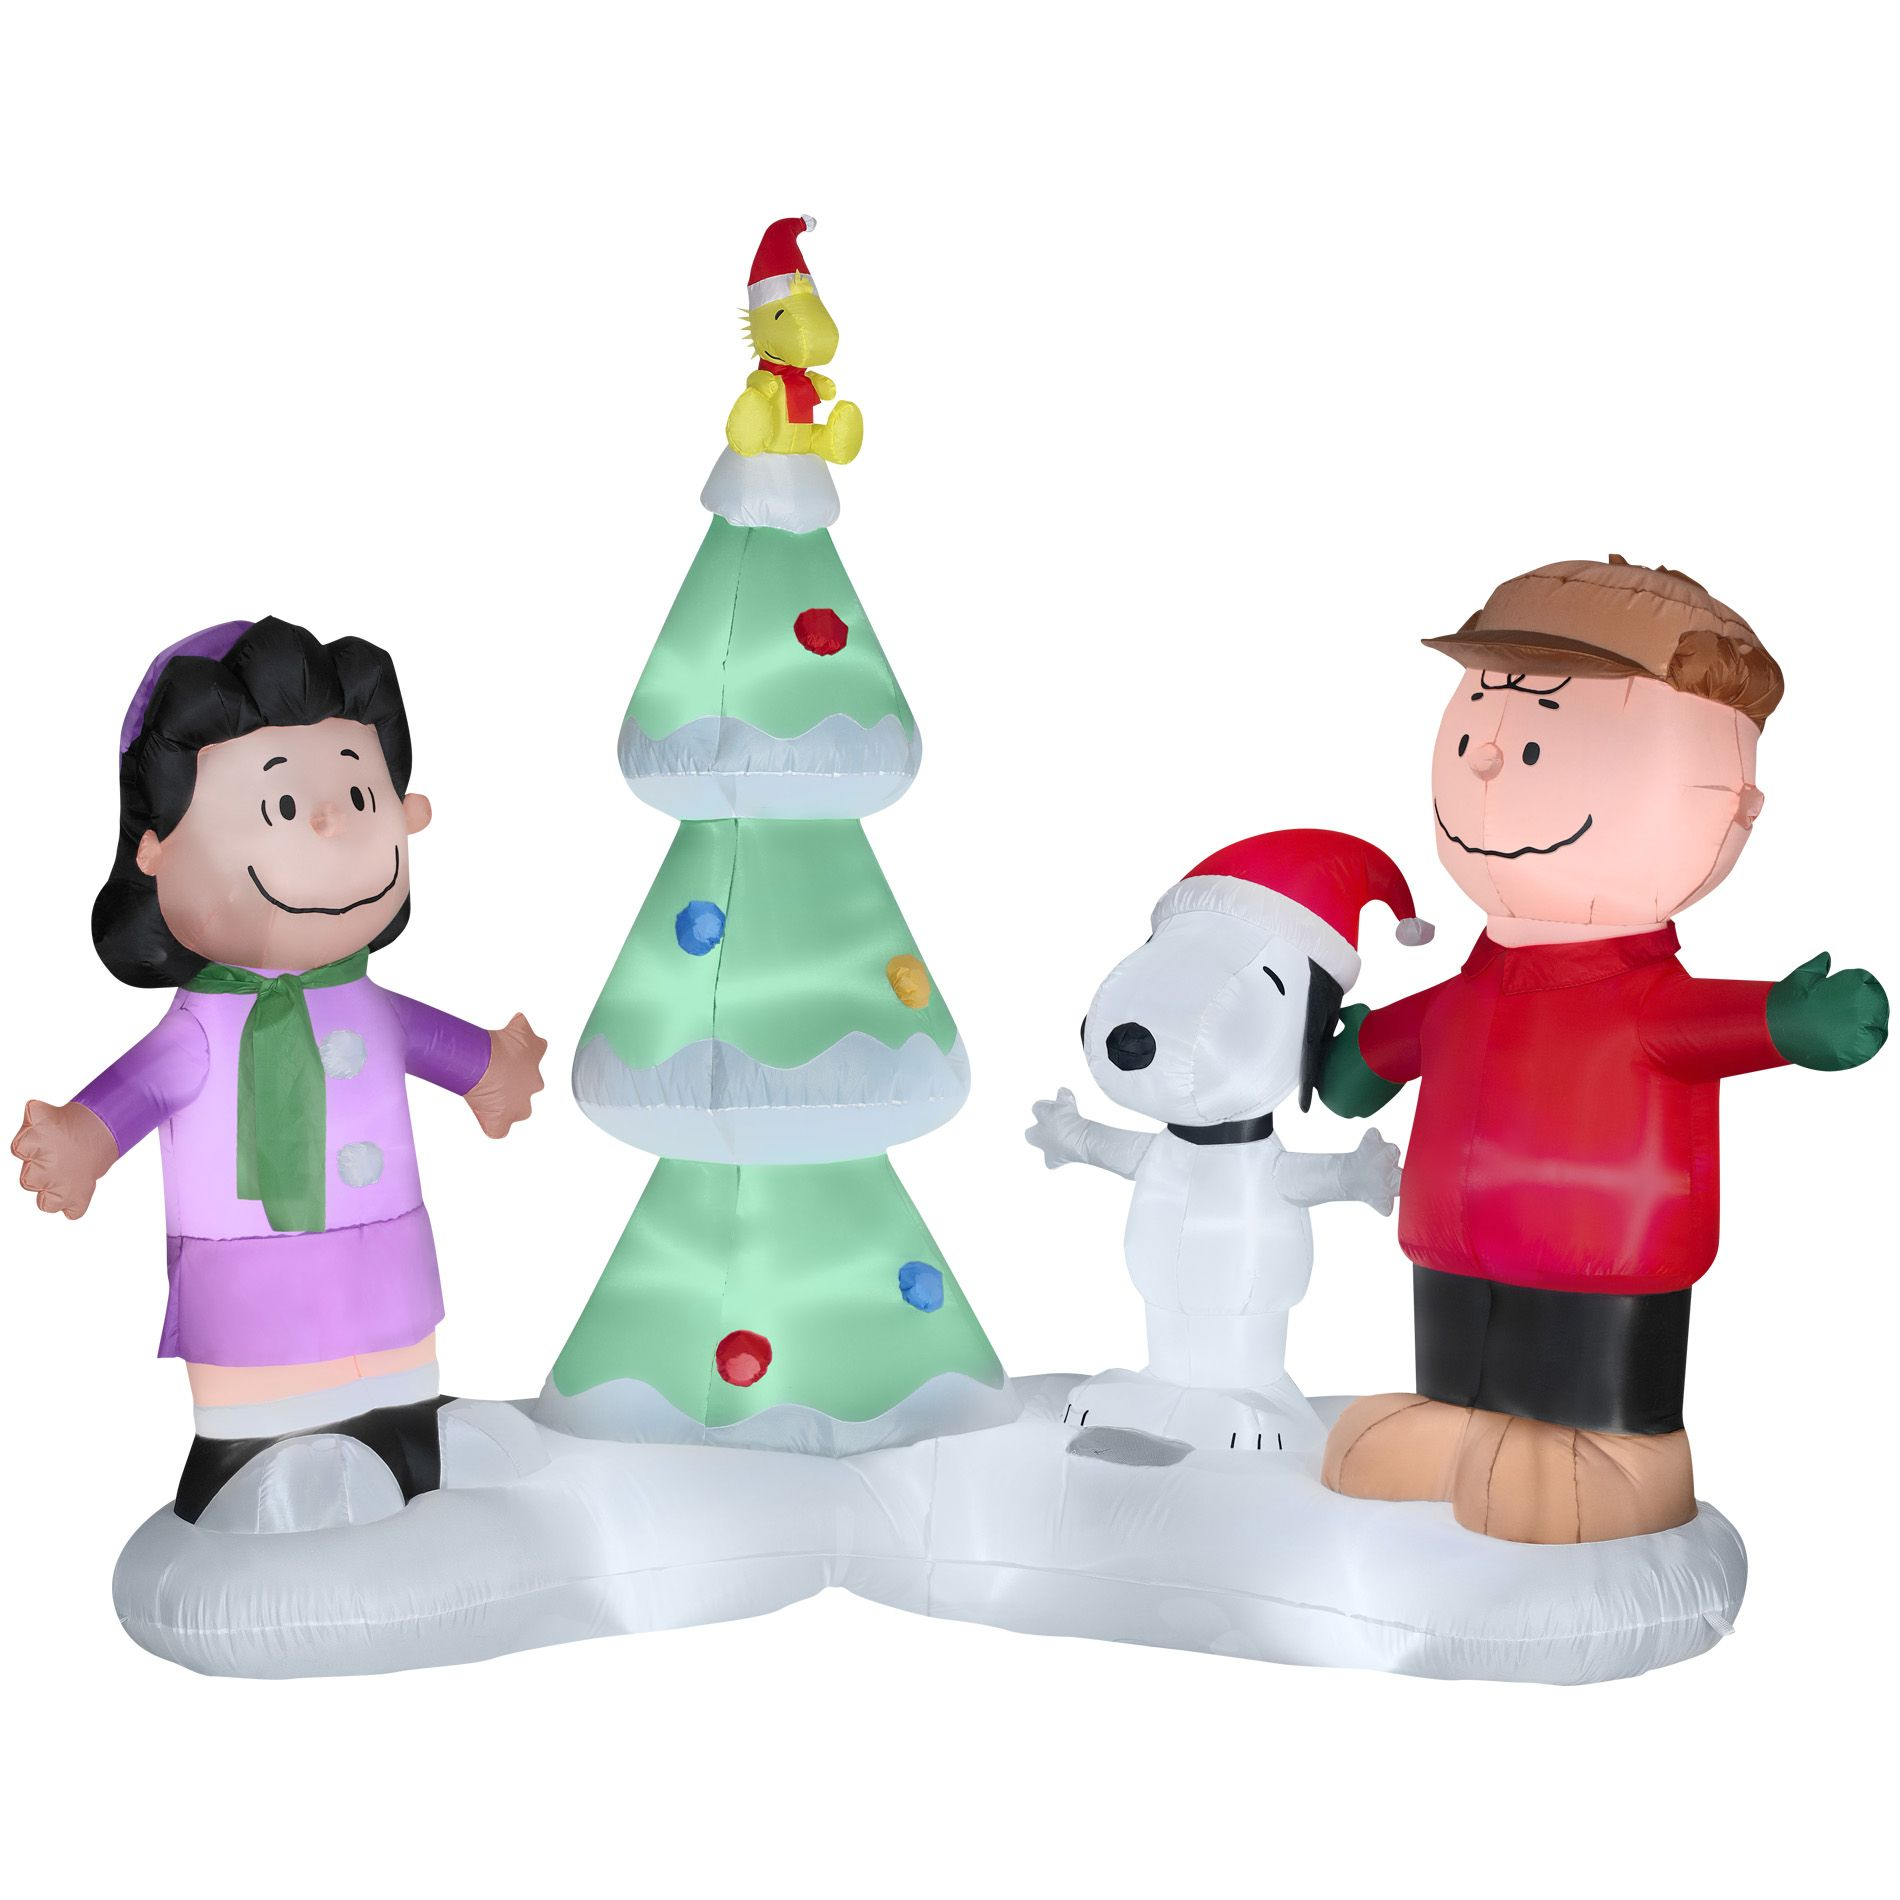 Peanuts By Schulz 65ft Lighted Musical Christmas Airblown